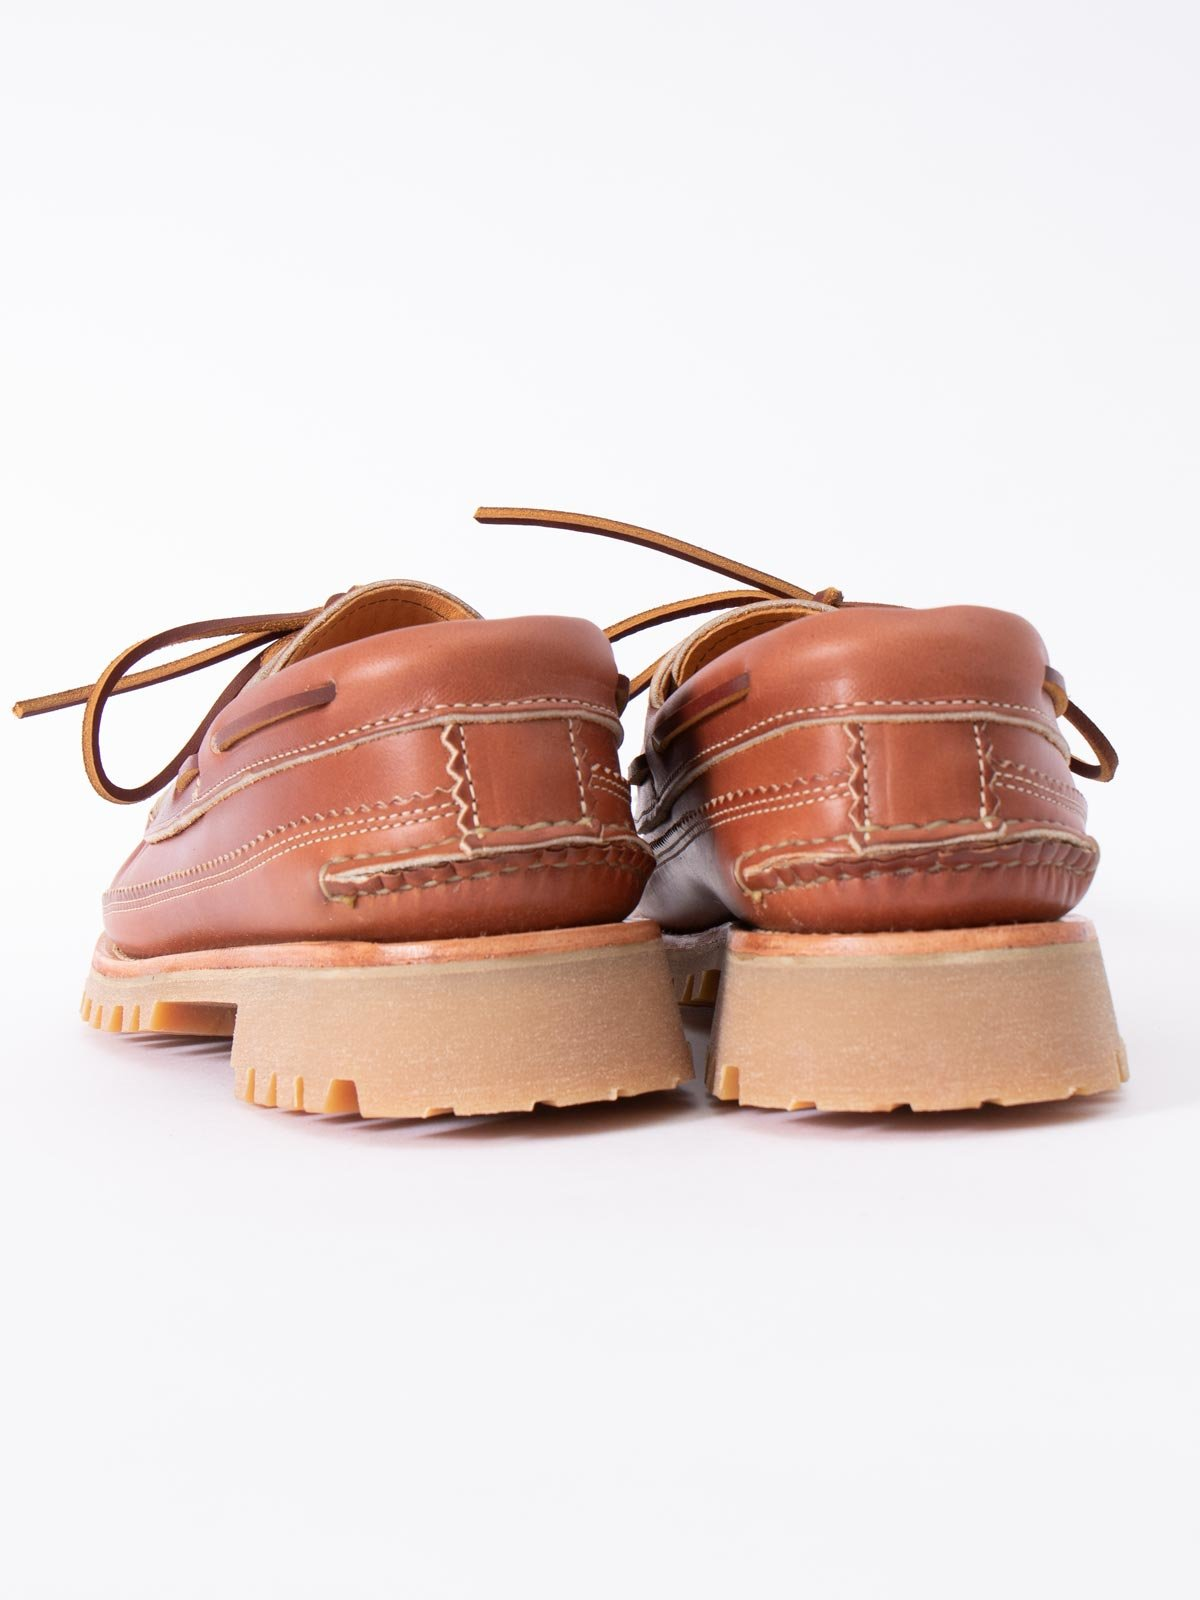 C WHISKEY DB BOAT SHOE W/ LUG SOLE EXCLUSIVE - Image 5